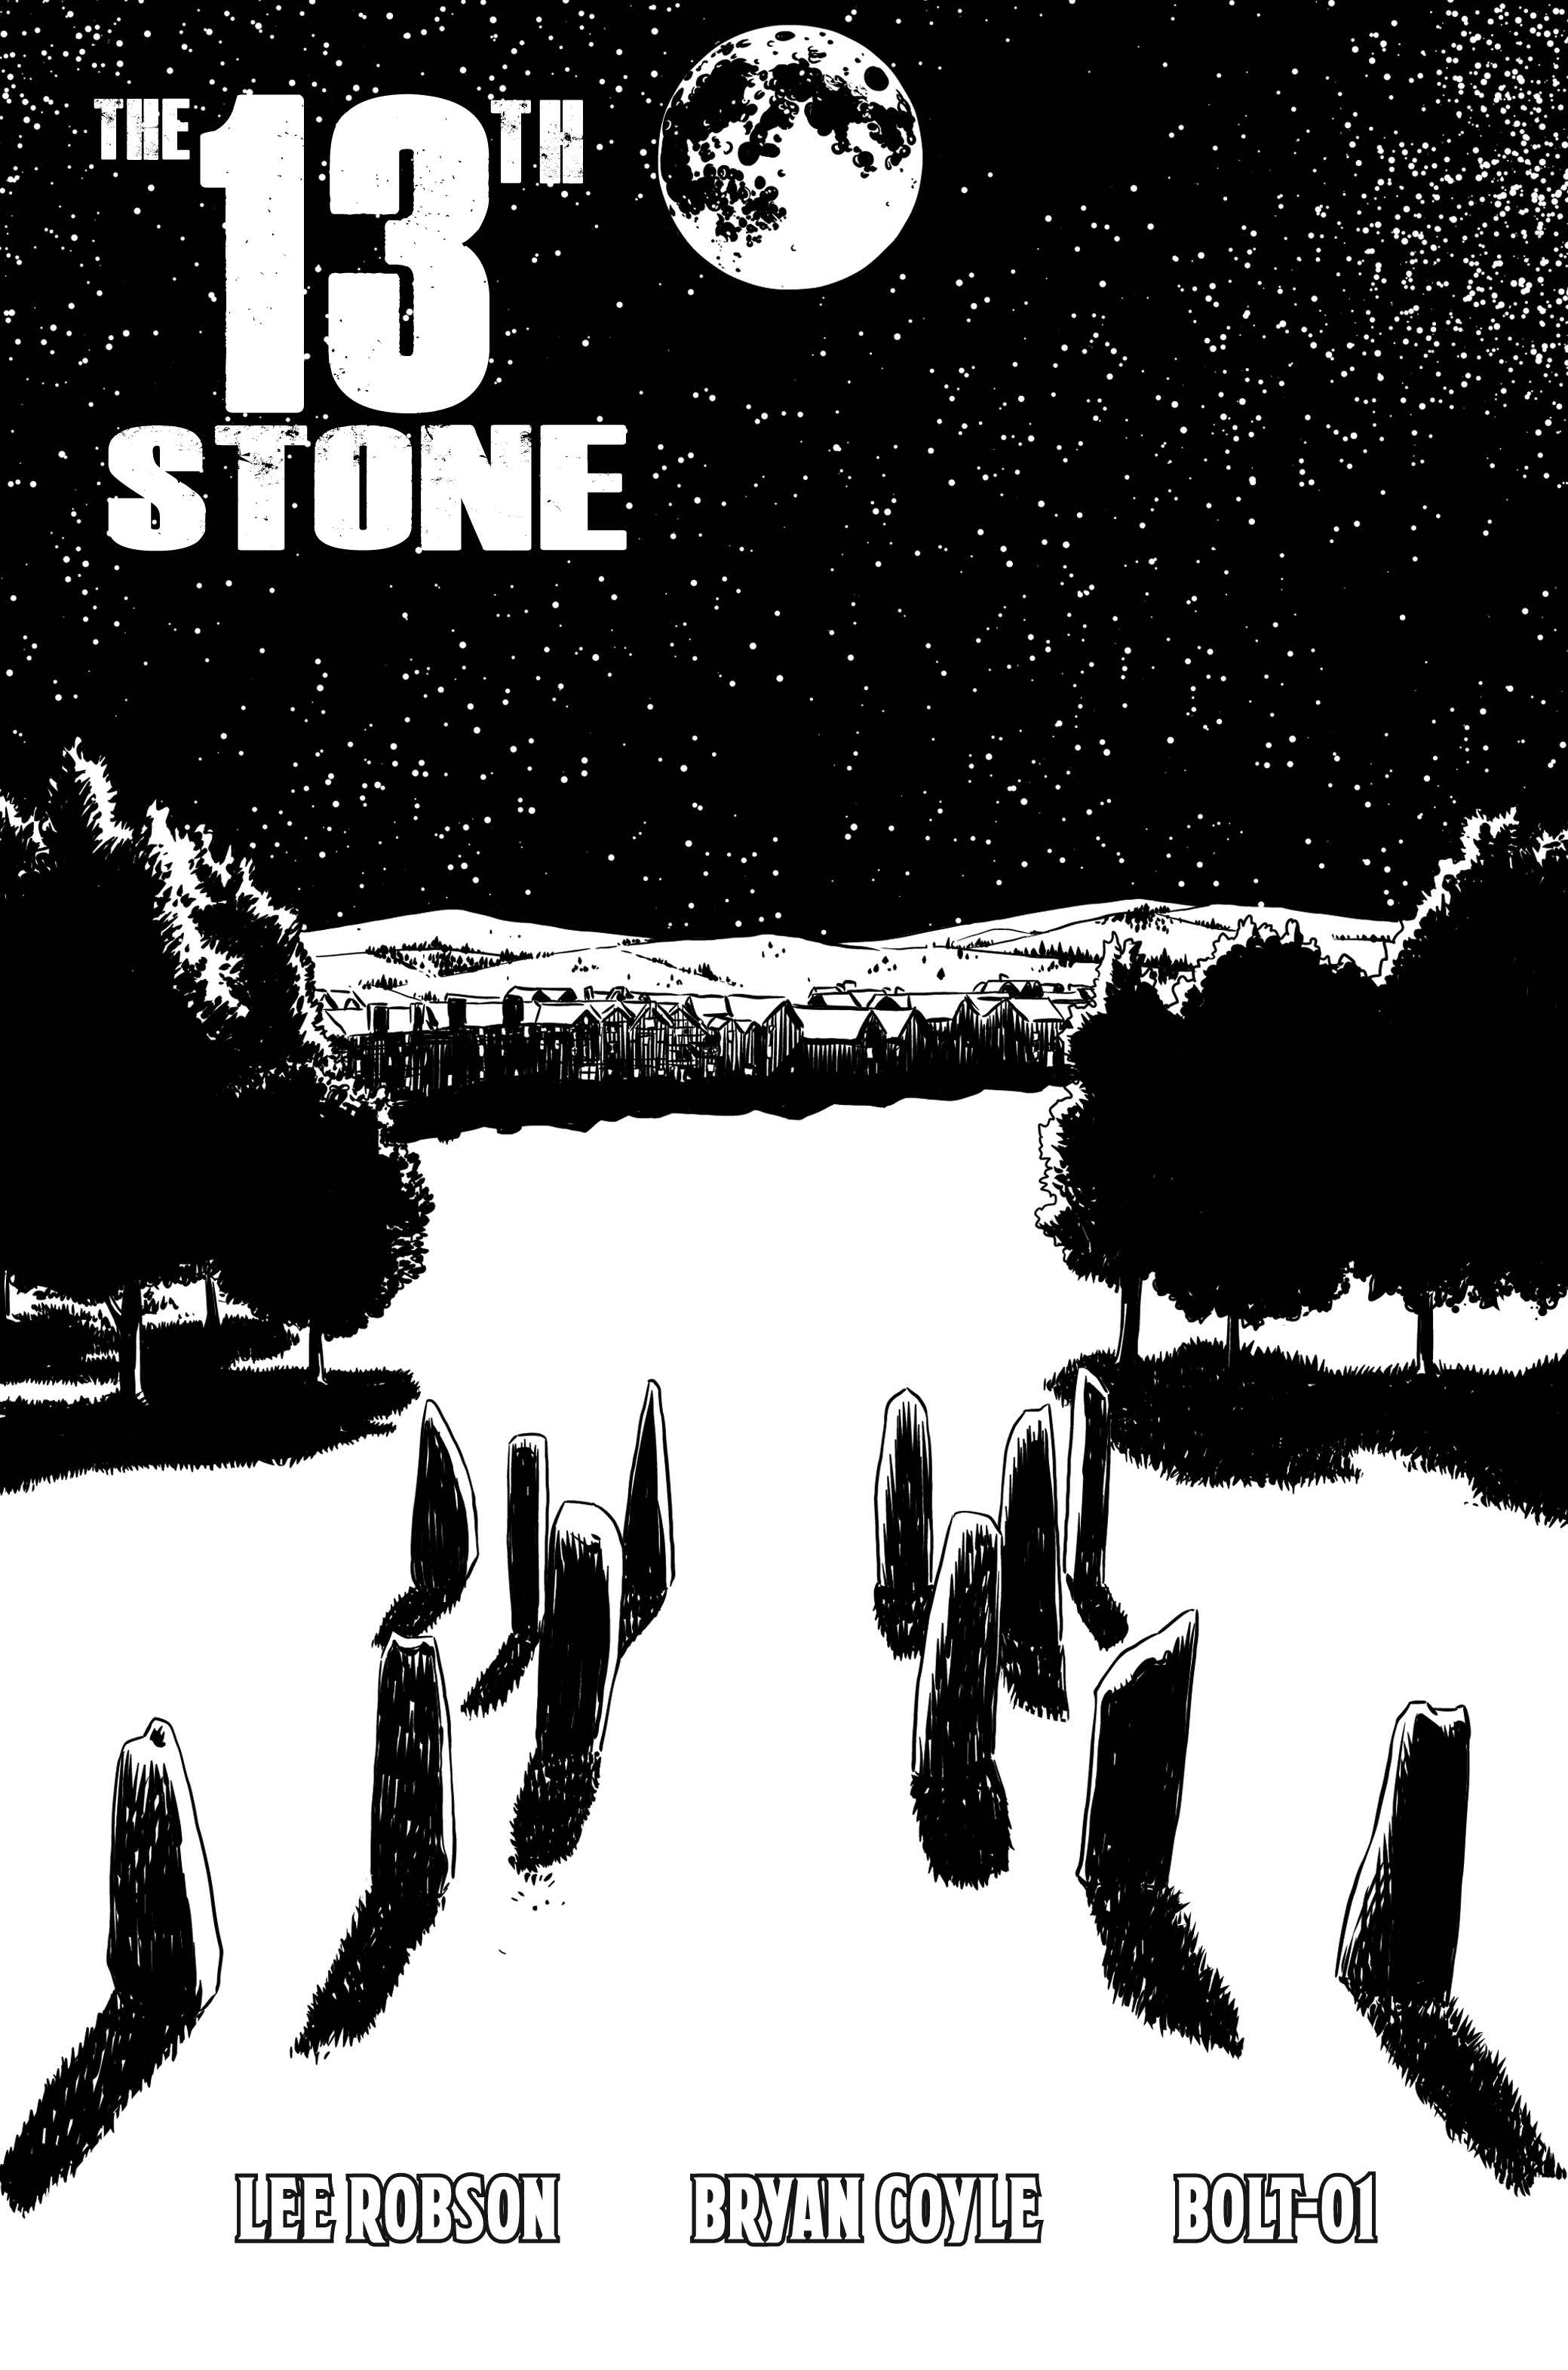 The 13th Stone - Cover